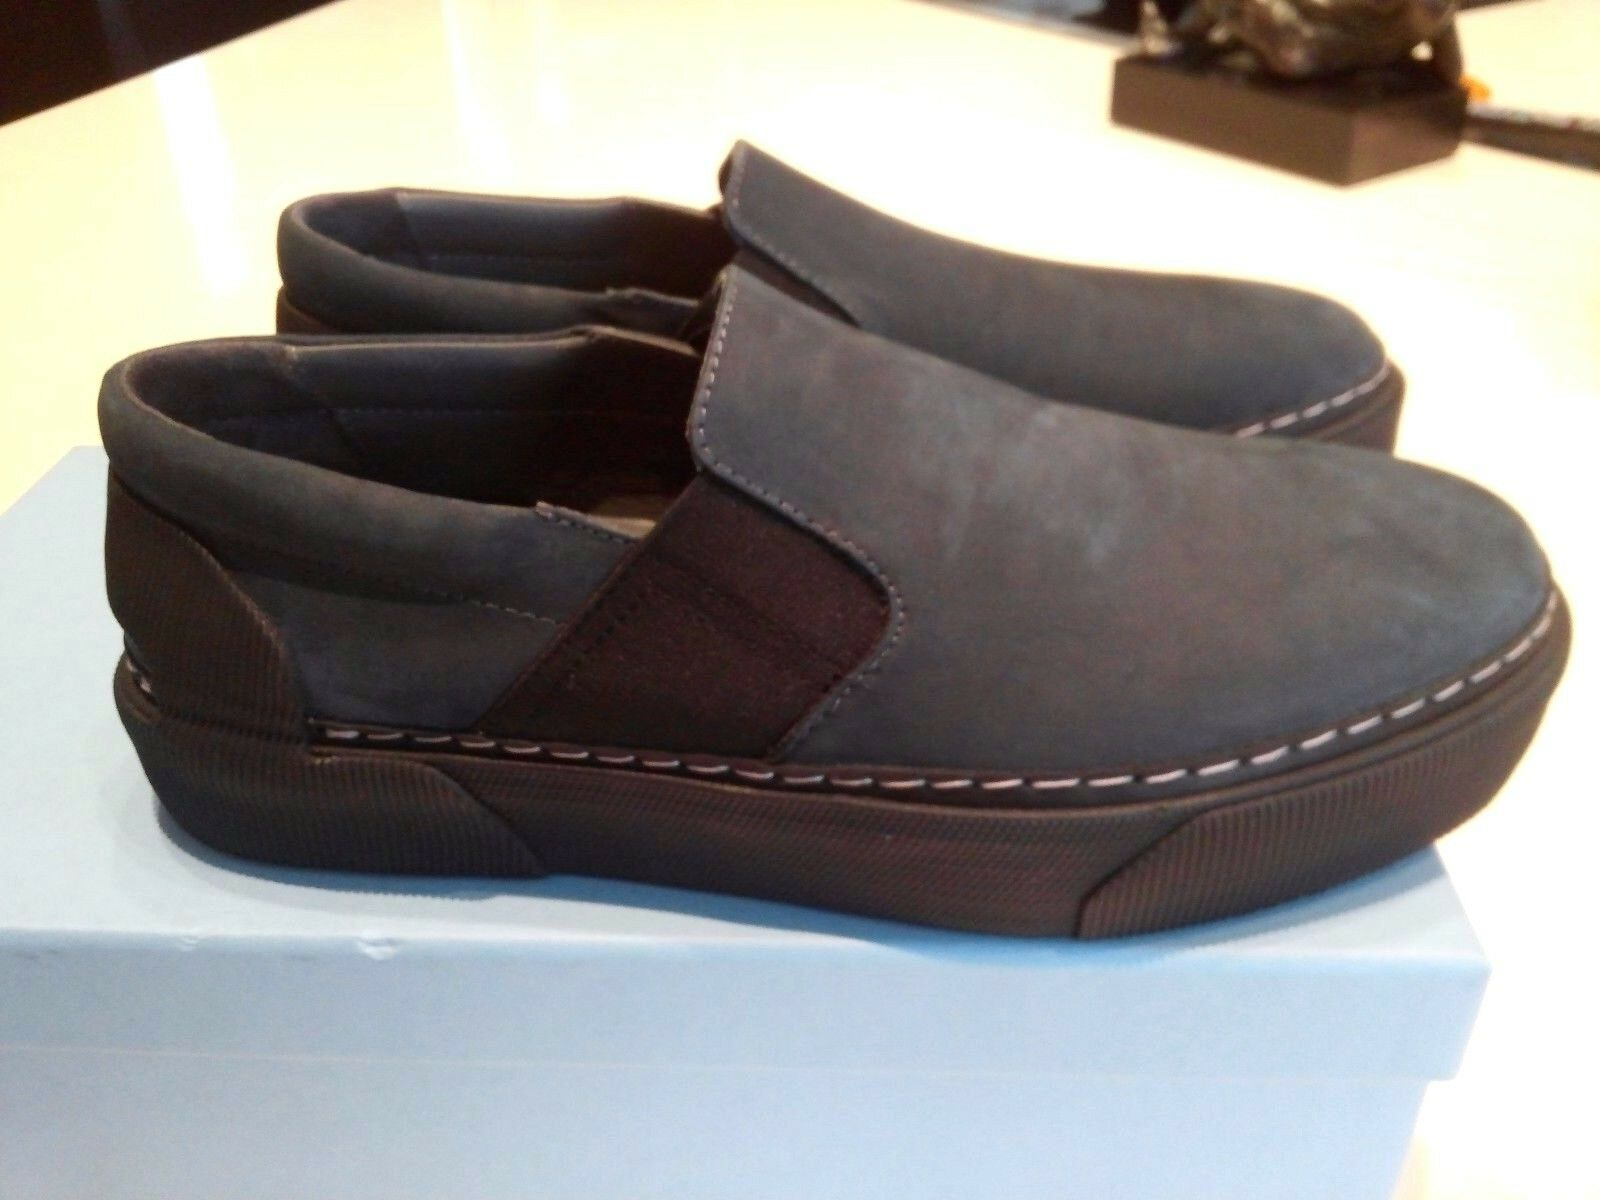 LANVIN NUBUCK SLIP ON MEN'S SNEAKER SHOES US 9 NEW IN BOX